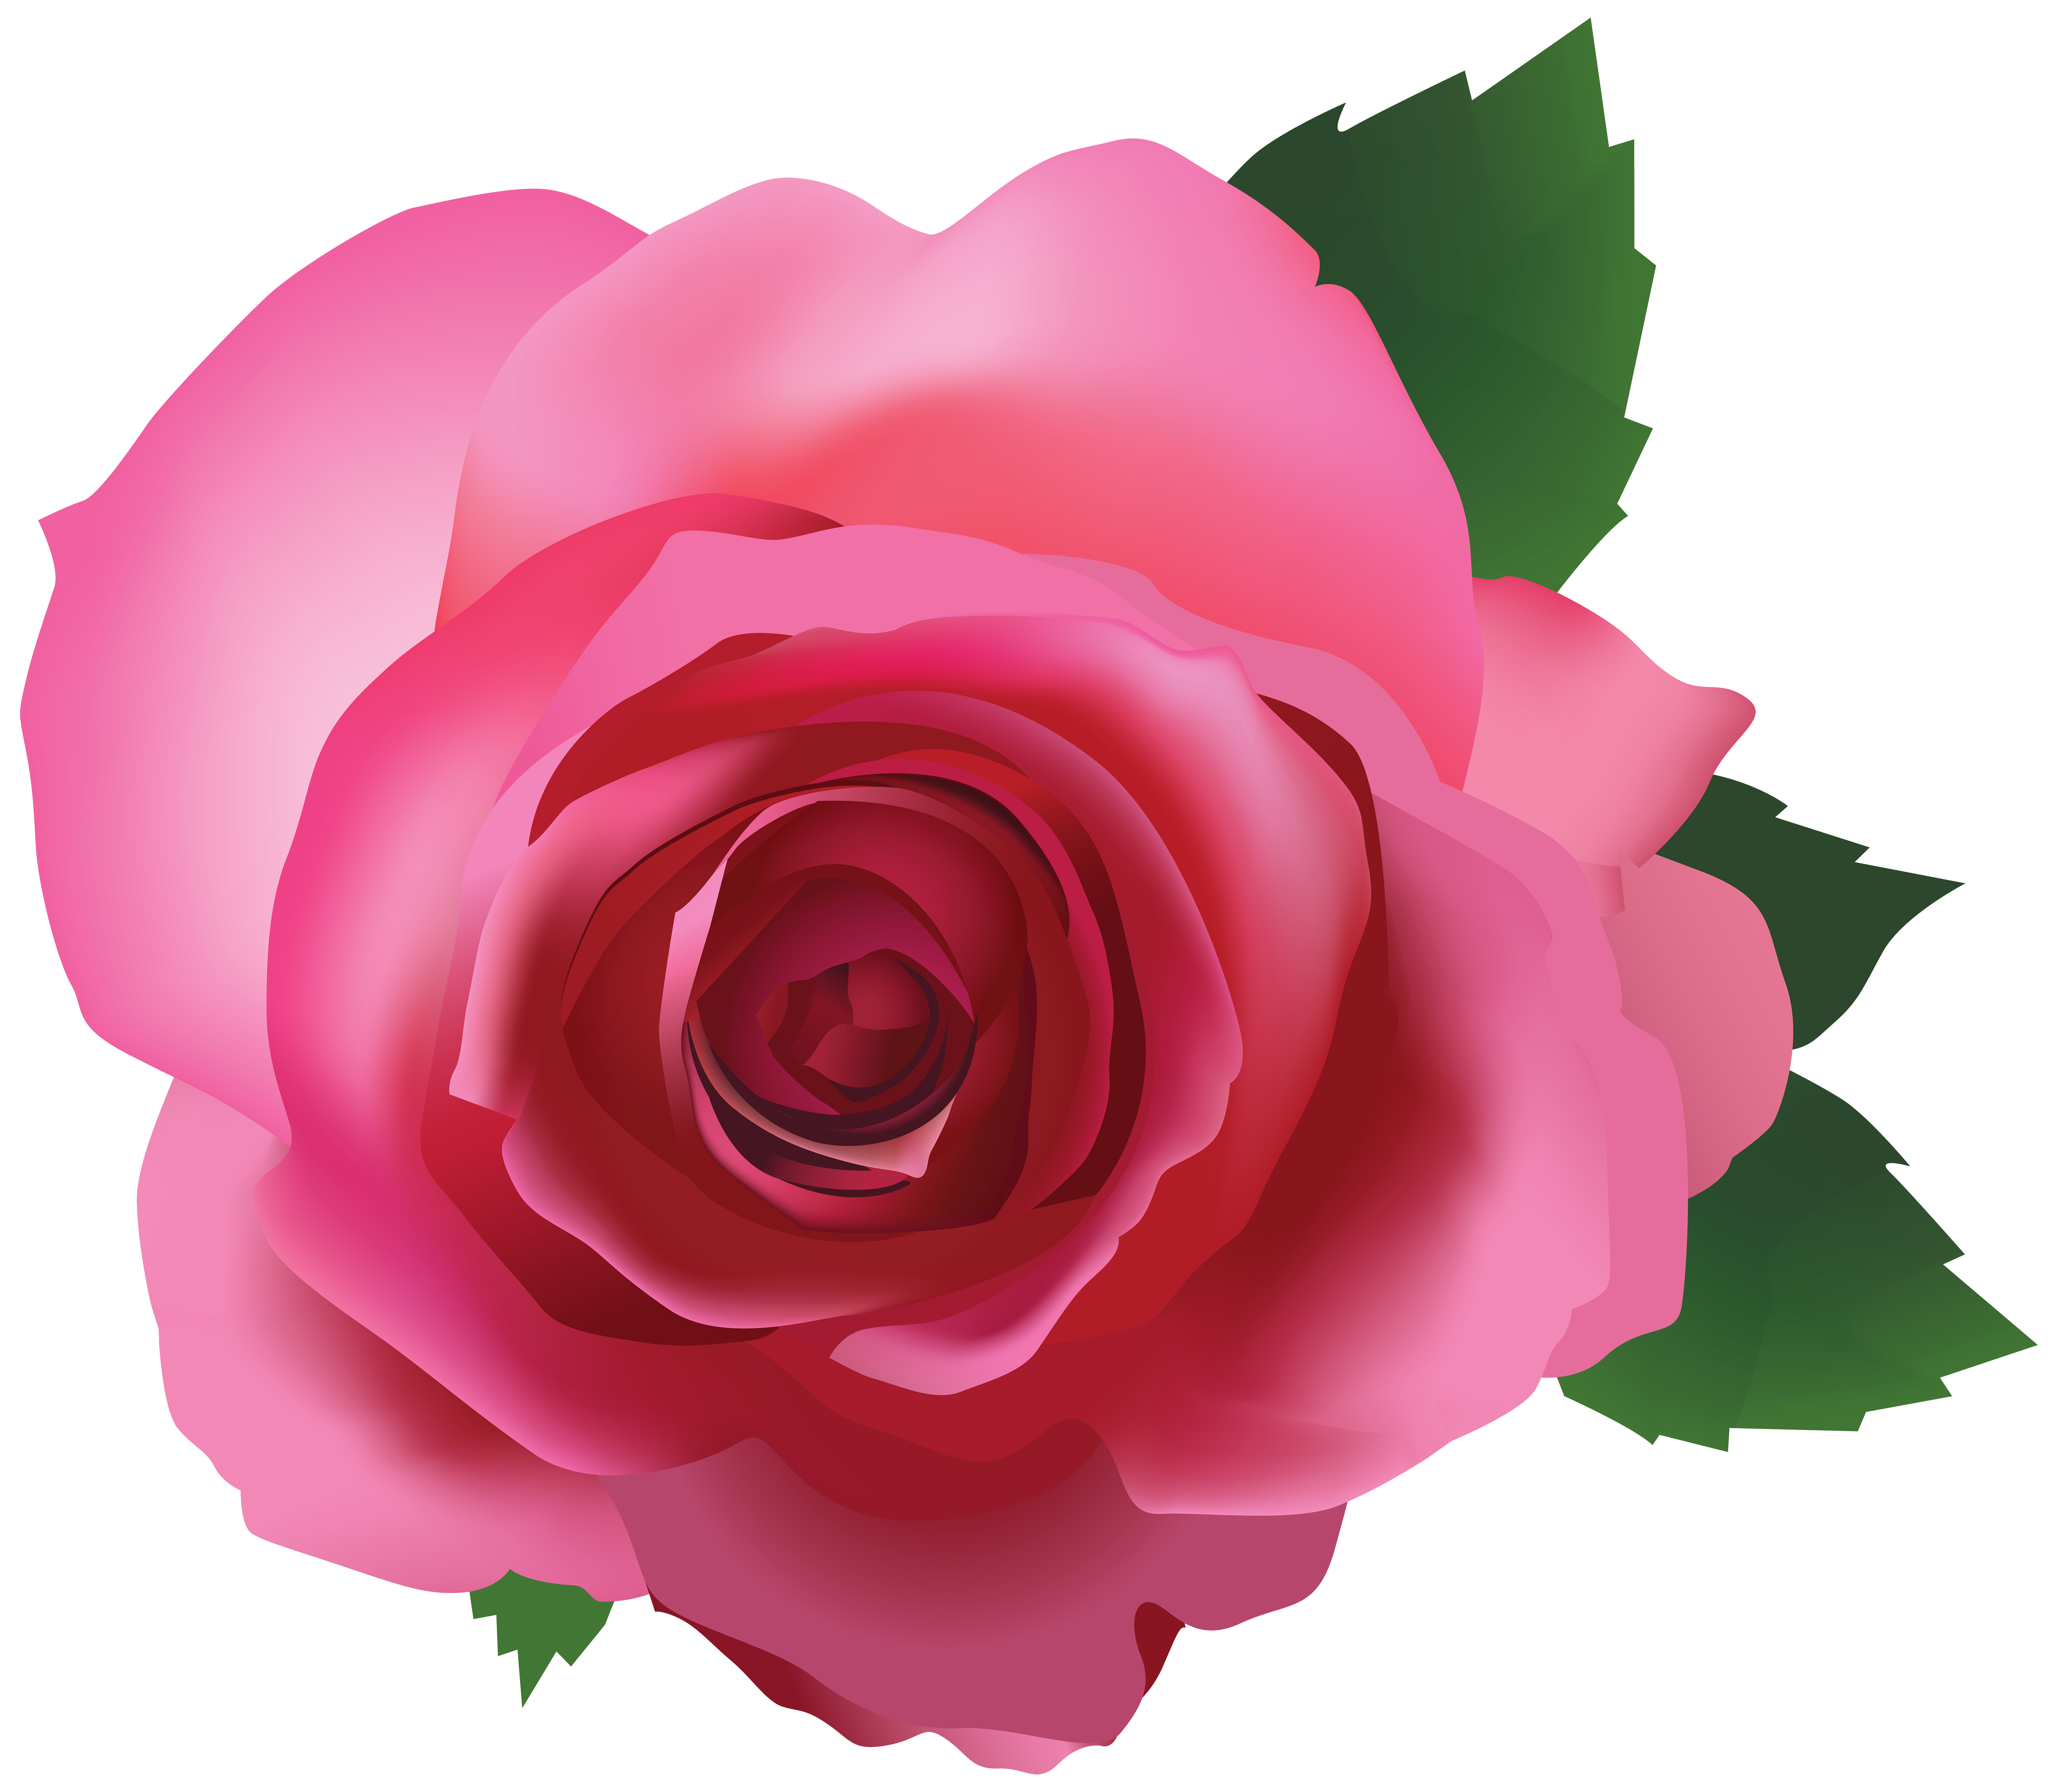 Clipart rose clear background. Pink transparent png image